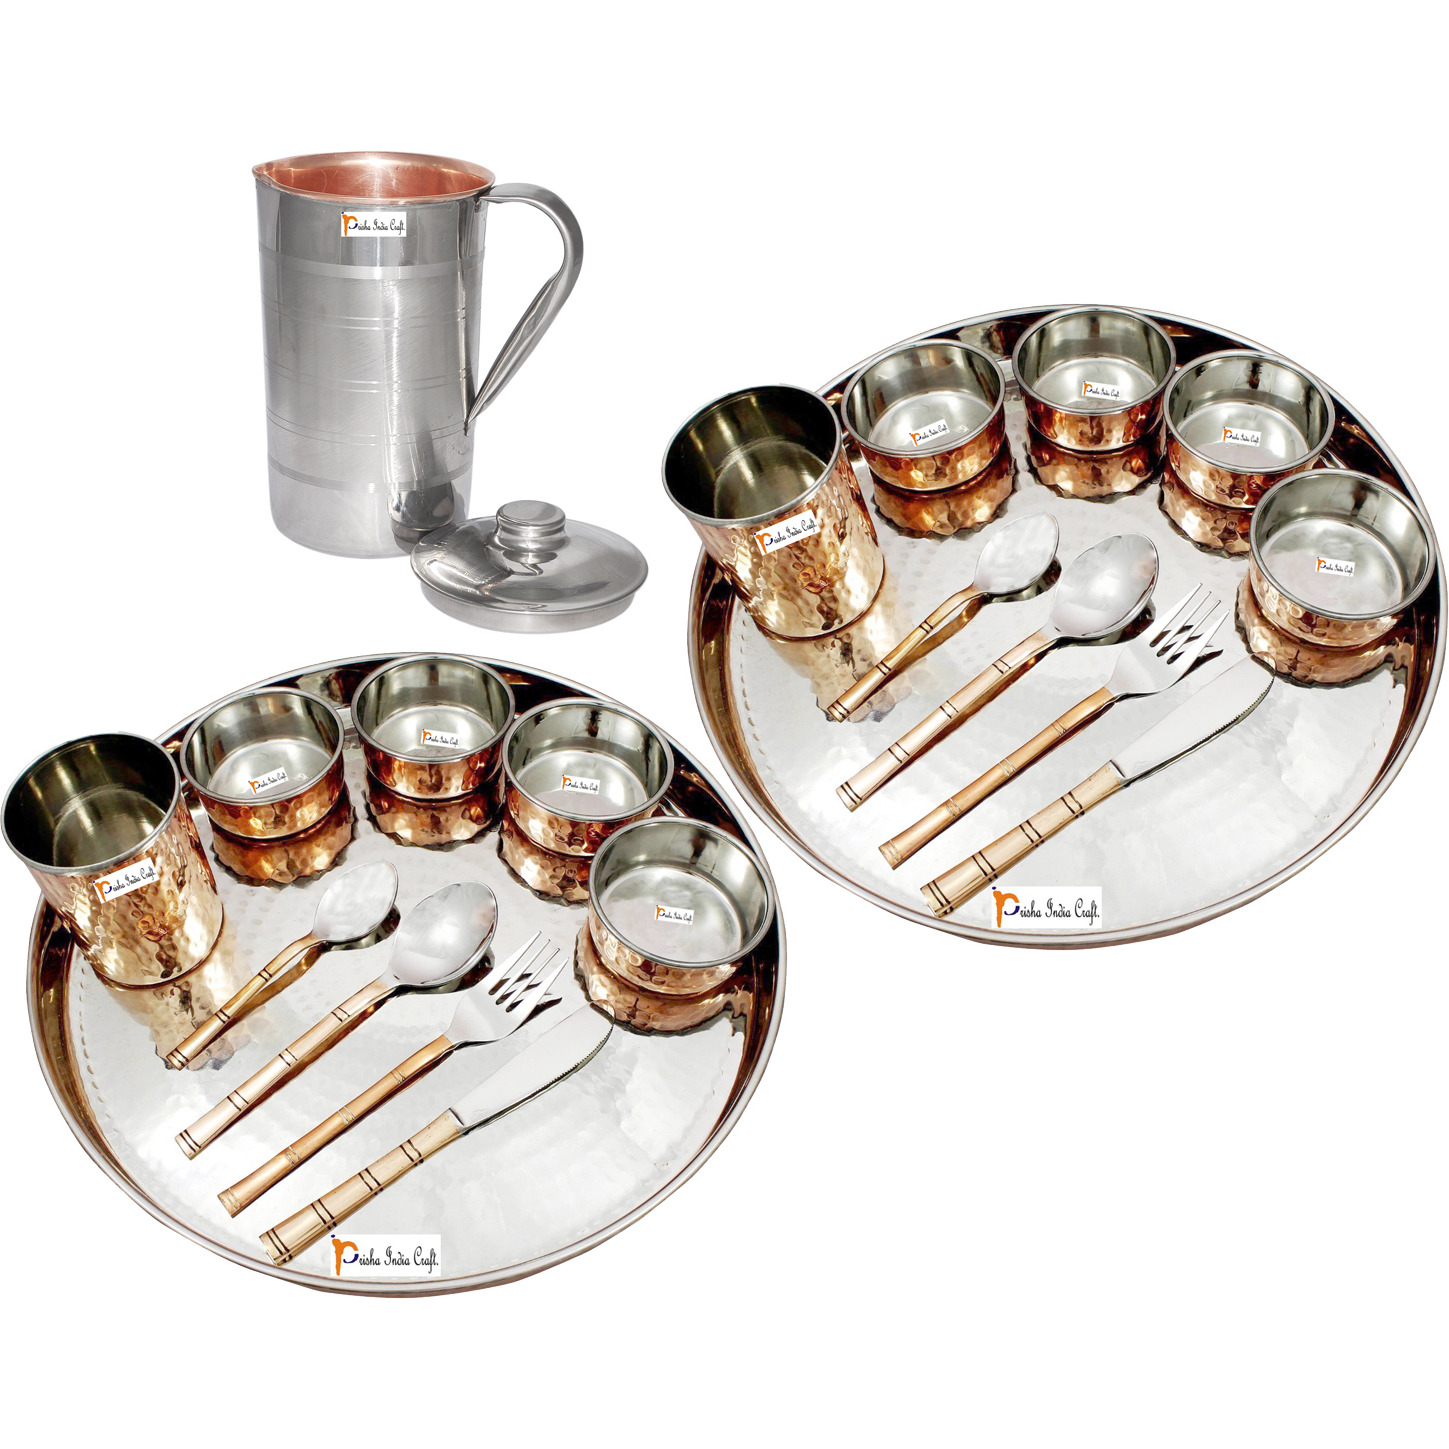 Prisha India Craft B. Set of 2 Dinnerware Traditional Stainless Steel Copper Dinner Set of Thali Plate, Bowls, Glass and Spoons, Dia 13  With 1 Luxury Style Pitcher Jug - Christmas Gift